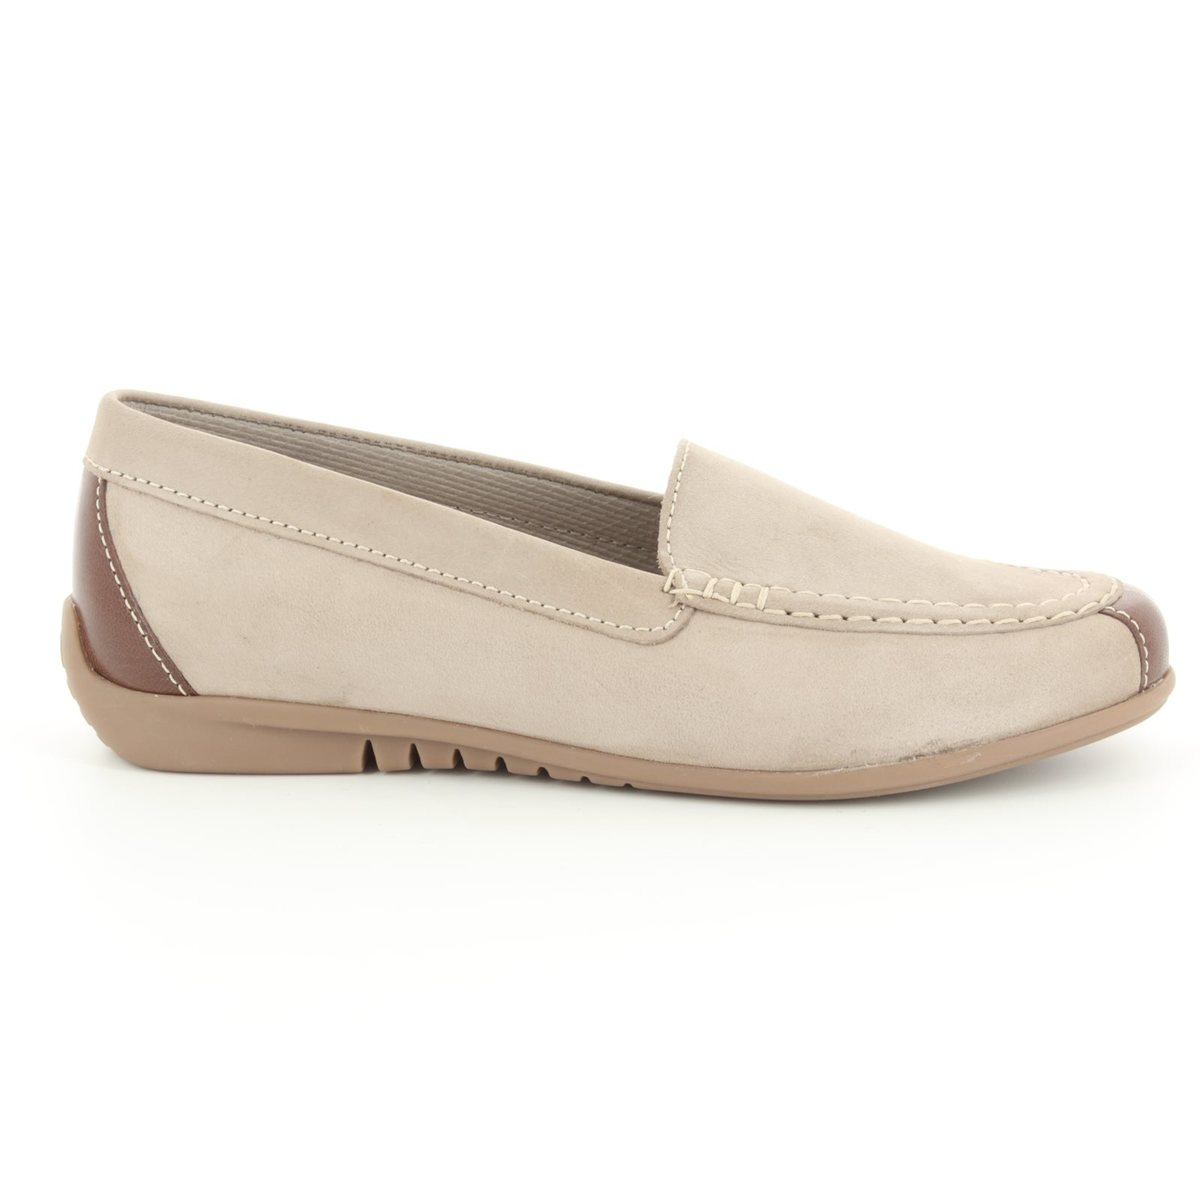 28415732041 Gabor Loafers - Beige-tan - 83.260.12 LOIS